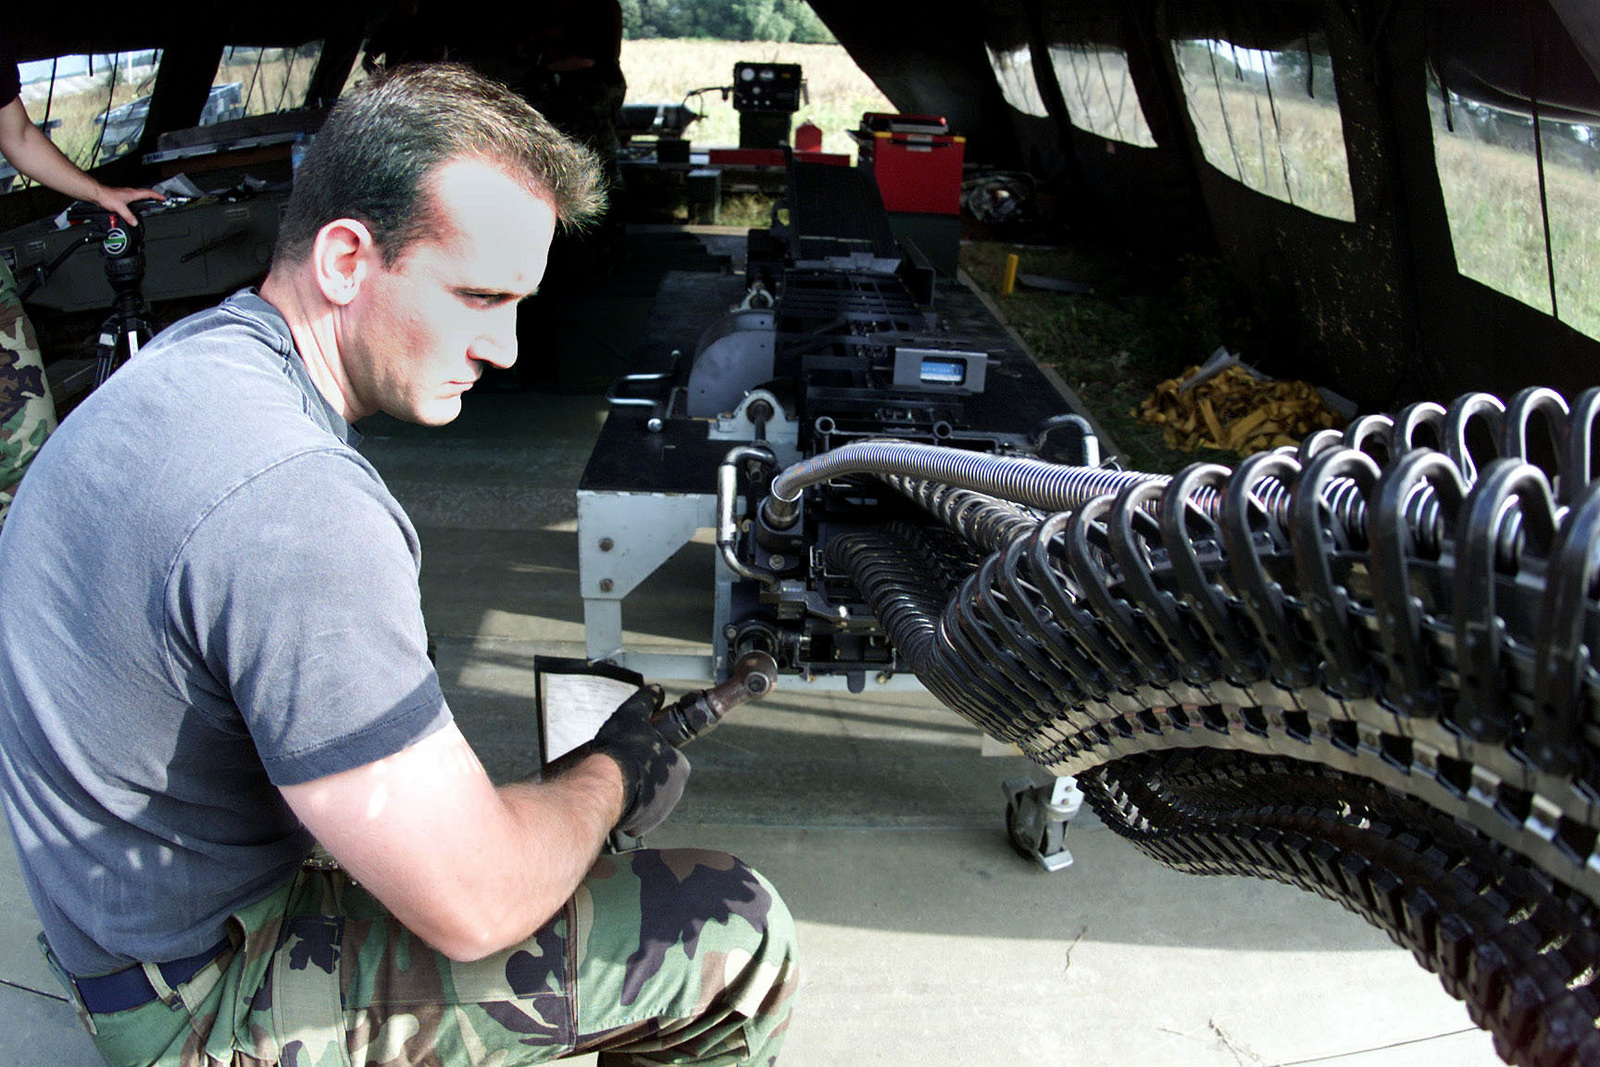 US Air Force Technical Sergeant Kenneth Childre, a Munnitions Systems Craftsman, 31st Maintenance Squadron, Aviano Air Base, Italy, finishes cycling a Universal Ammunition Loading system (UAL) so that it can be uploaded. Training Exercise IRON CLAW, Kuchyna AB, Slovakia (SVK), 14 September 2000